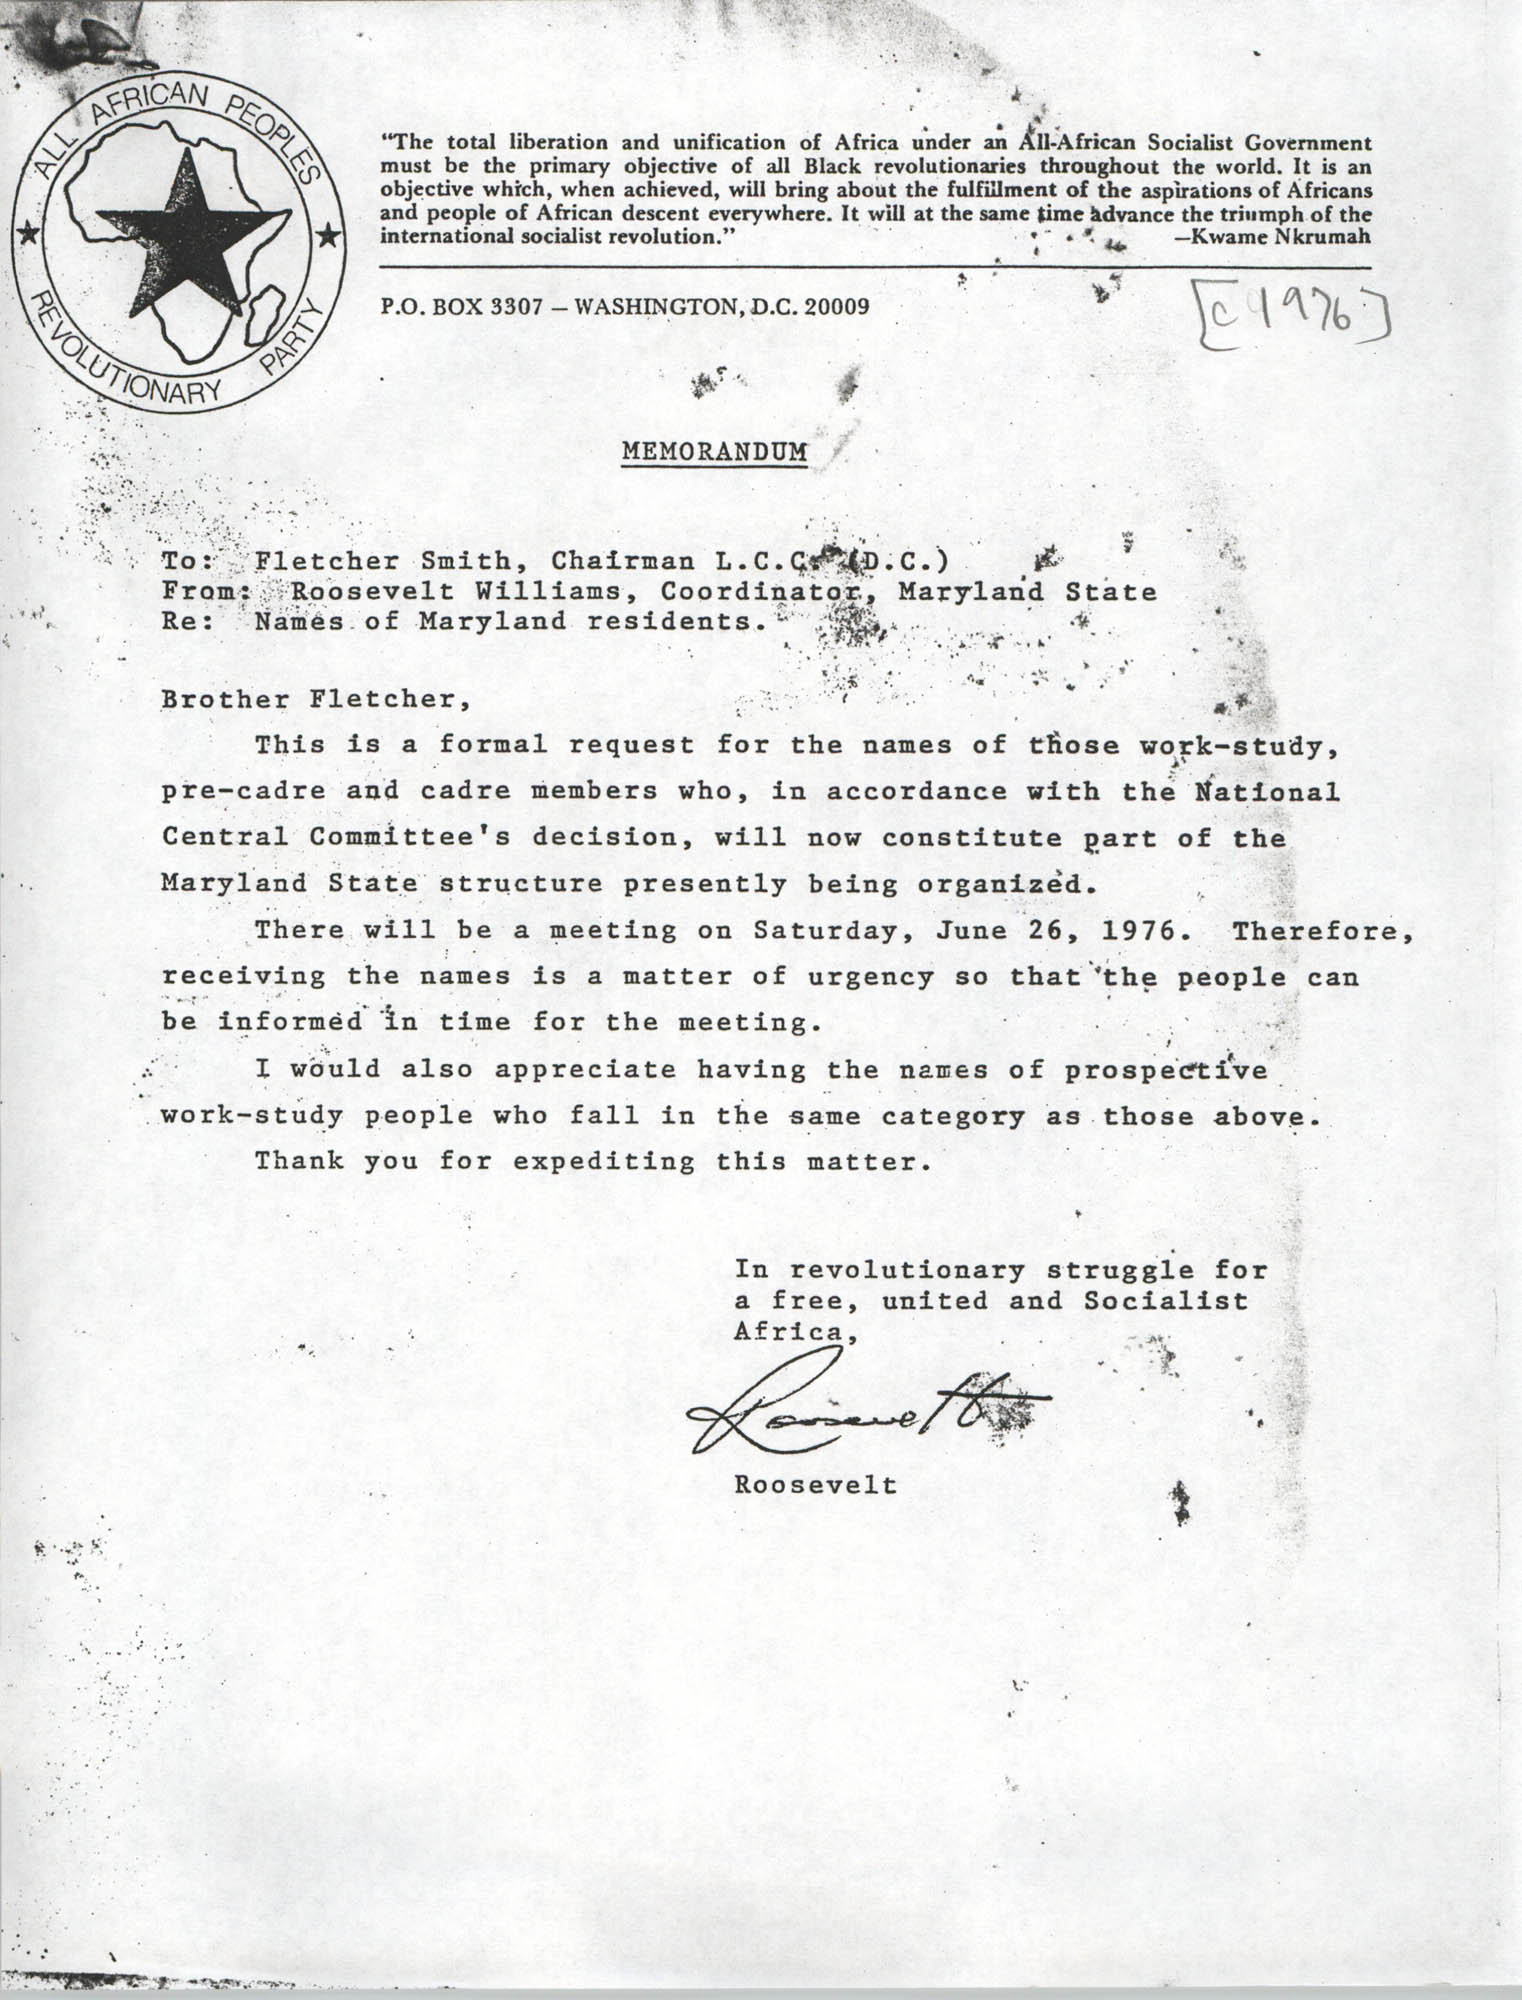 Memorandum from Roosevelt Williams to Fletcher Smith, 1976